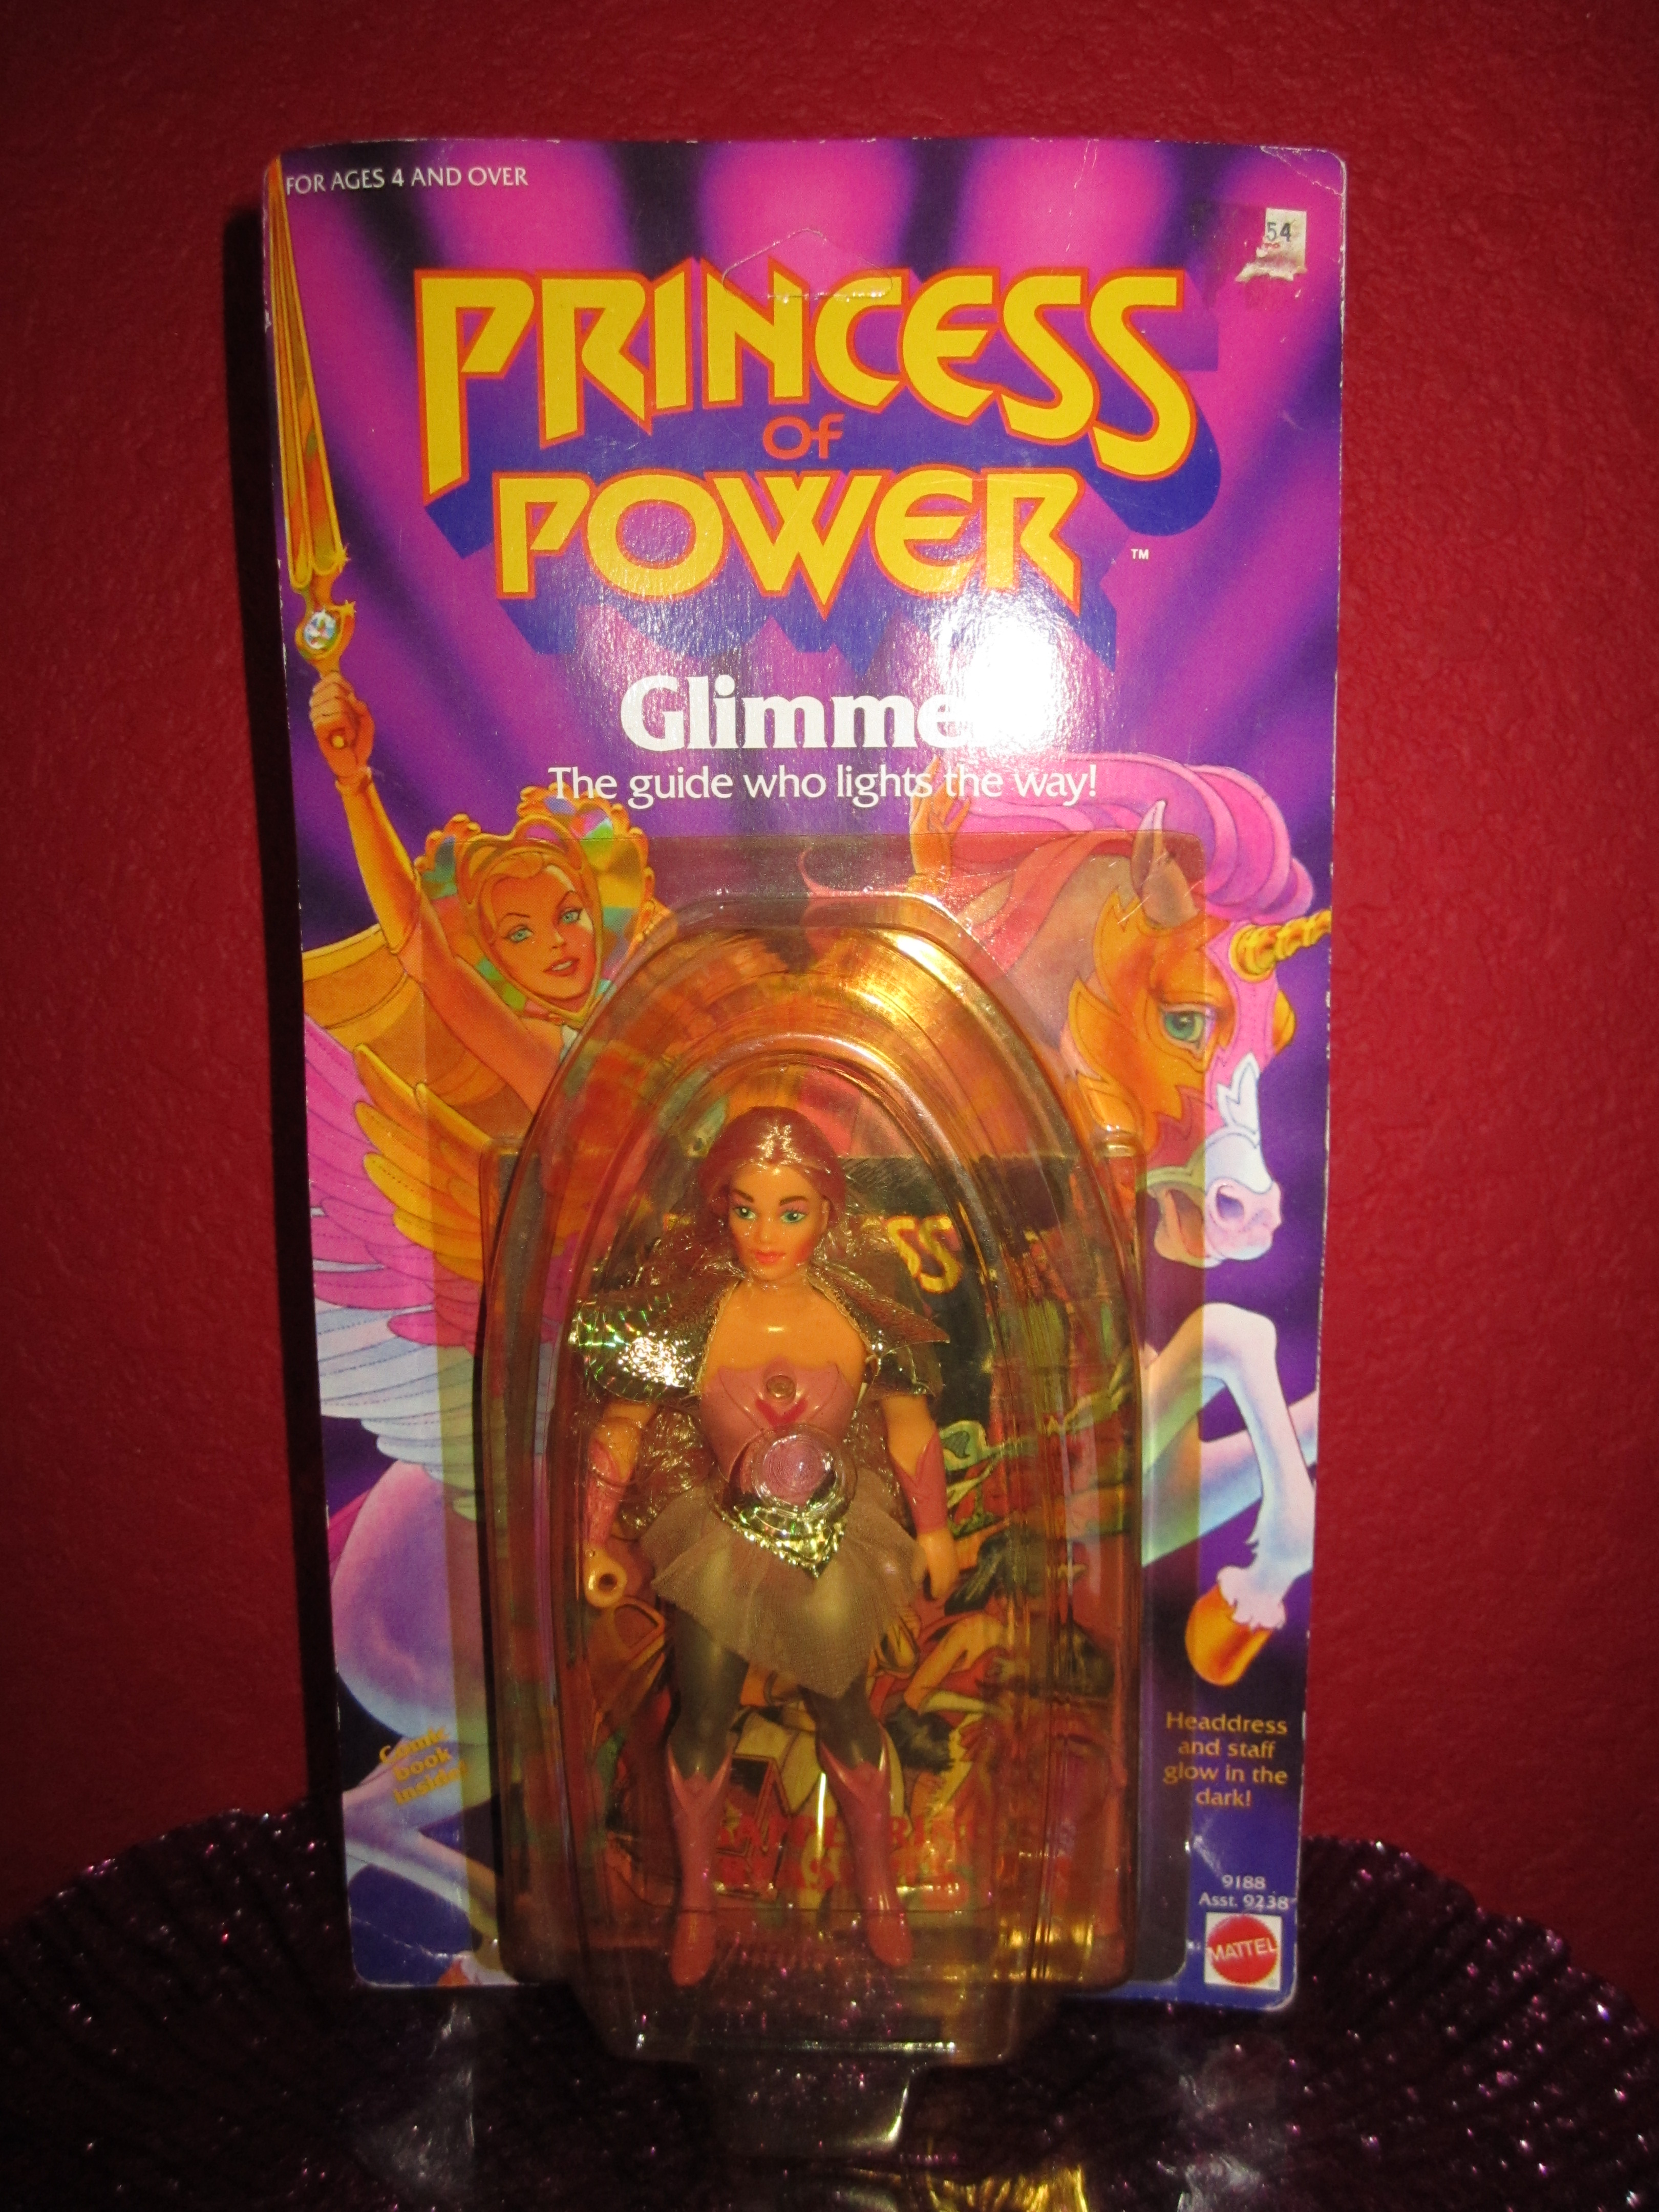 001 Vintage Toy of the Month! Glimmer!